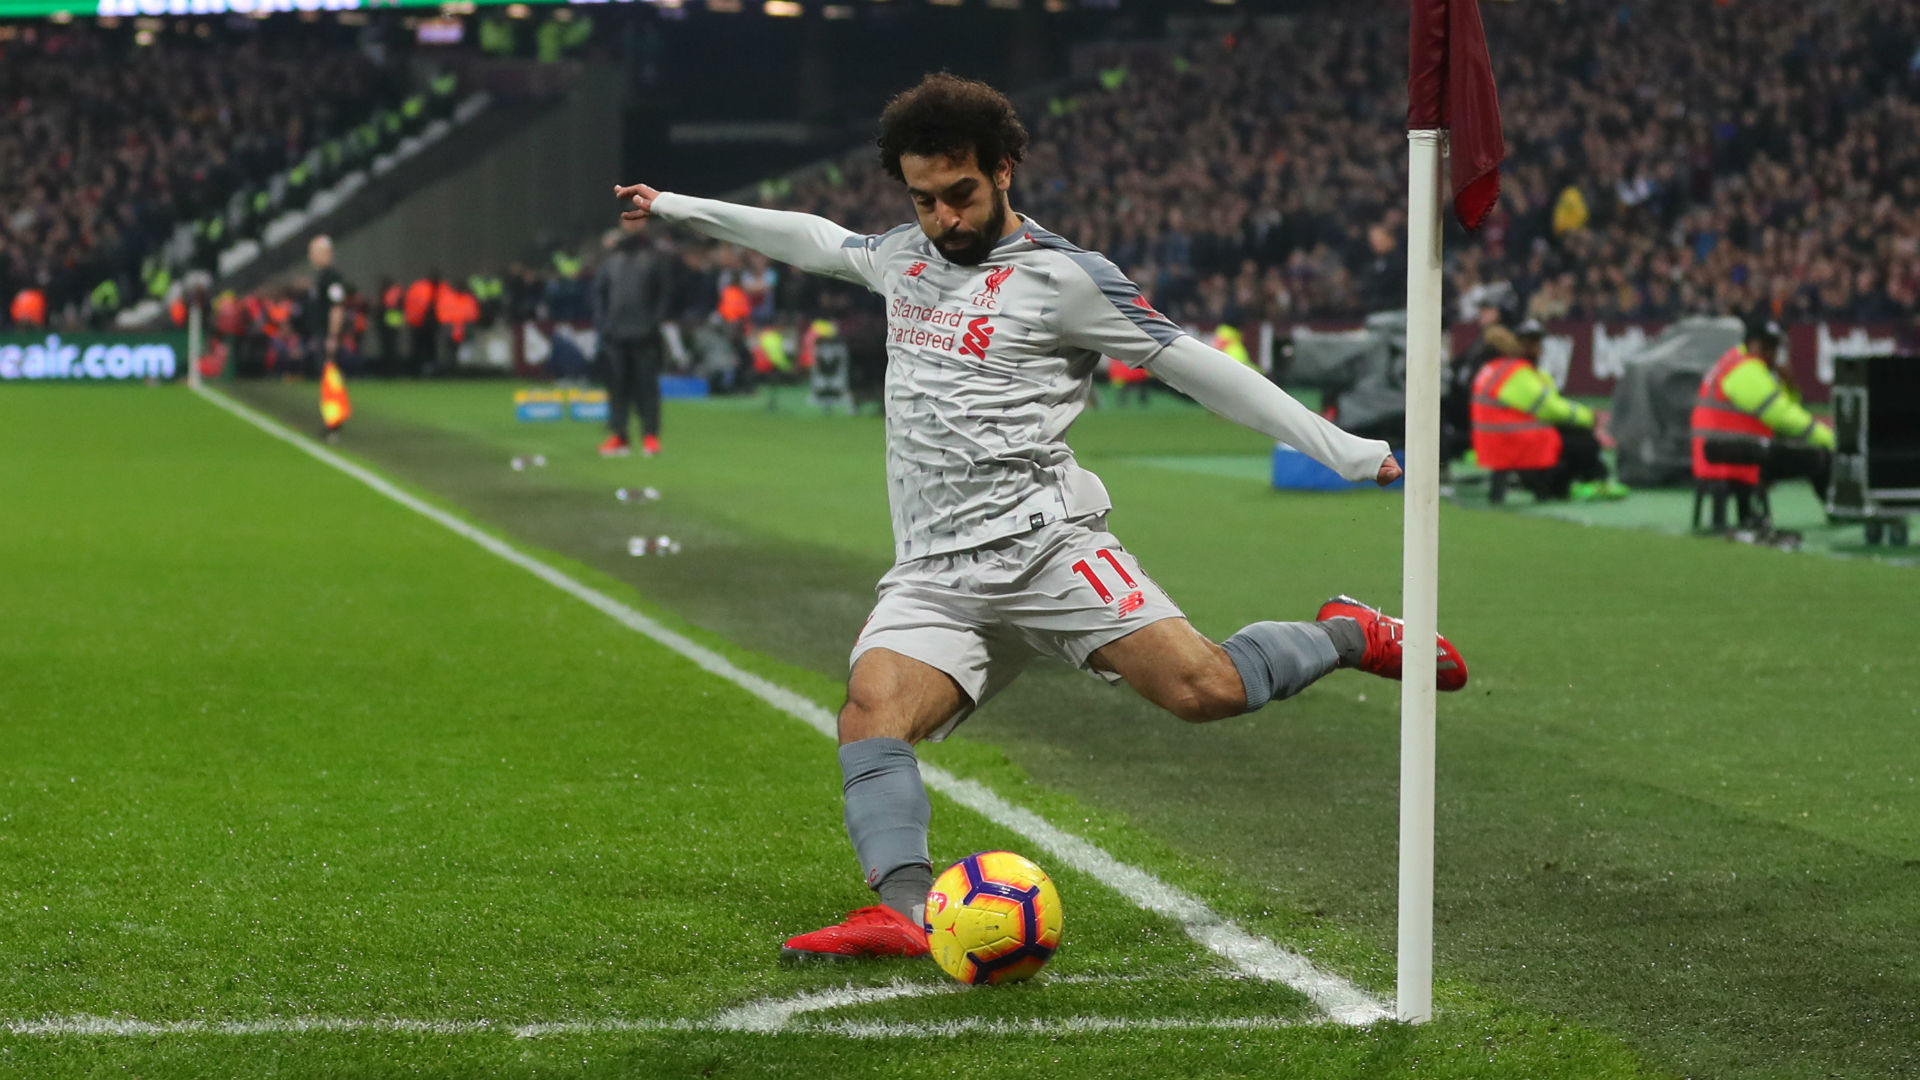 West Ham investigating racist abuse of Salah